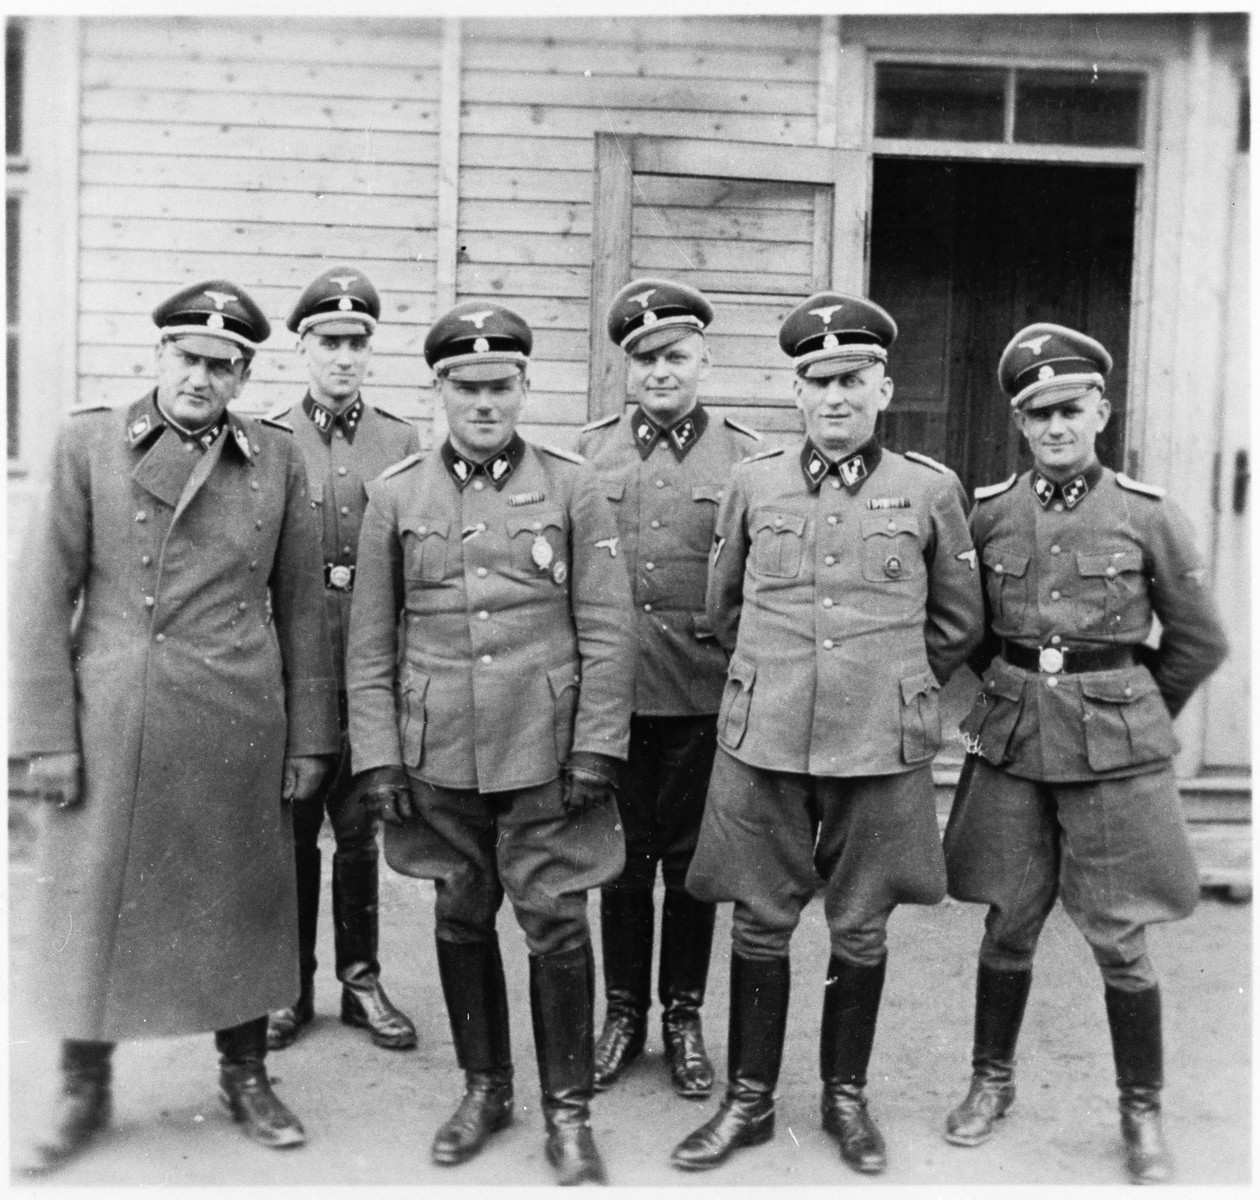 SS Oberfuhrer Hans Loritz, commandant of Sachsenhausen (center) visits the Gross Rosen concentration camp.  Also pictured are Arthur Roedl (left), Friedrich Entress (second from the left) Hans Loritz, Michl, Hubert Lauer (the administratie head of Sachsenhausen, second from right) and Anton Thumann (far right).  This photo was probably taken shortly before Gross-Rosen became an independent concentration camp and ceased to be a sub-camp of Sachsenhausen.